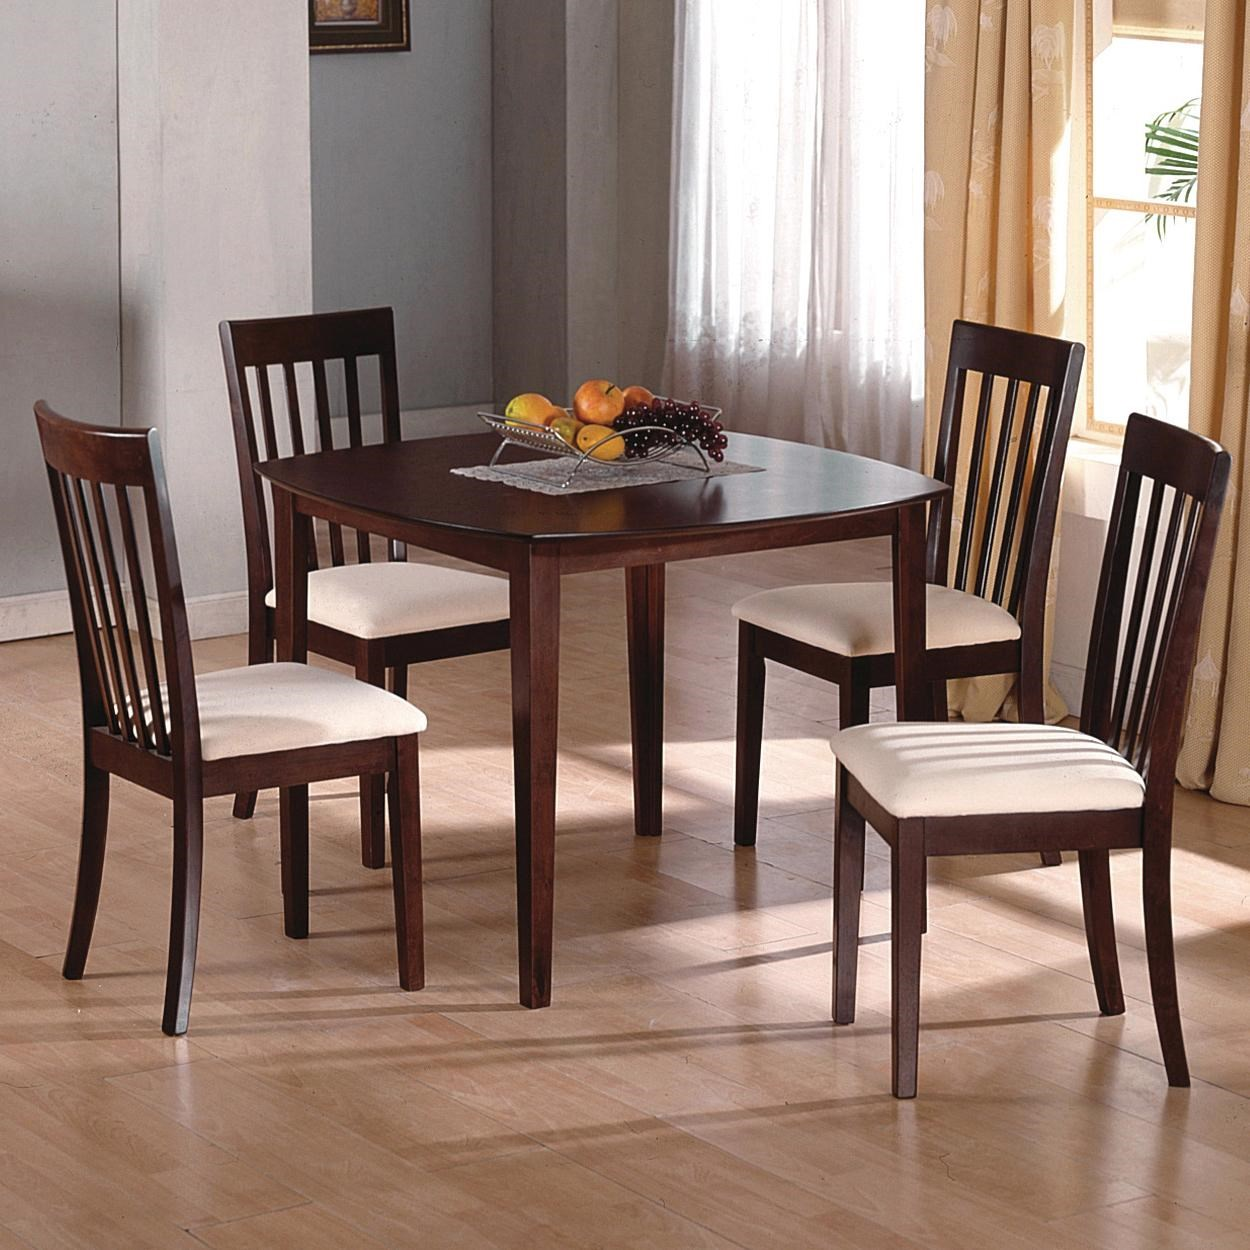 crown mark ashland 5 piece kitchen table and upholstered chairs set crown mark ashland 5 piece kitchen table and upholstered chairs      rh   casaleadersinc com